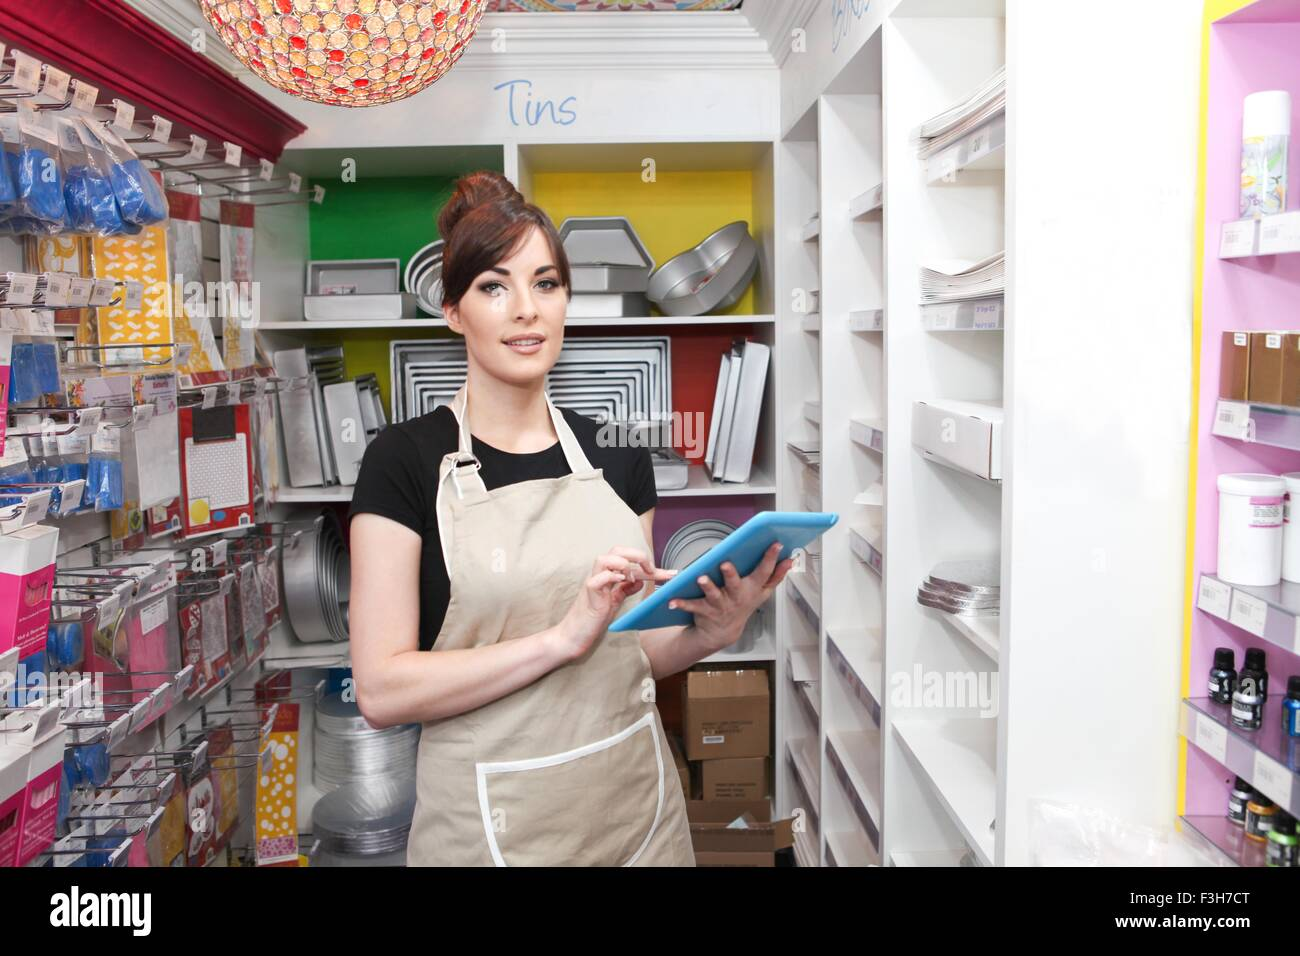 Young woman working in cake shop, holding digital tablet, counting stock - Stock Image